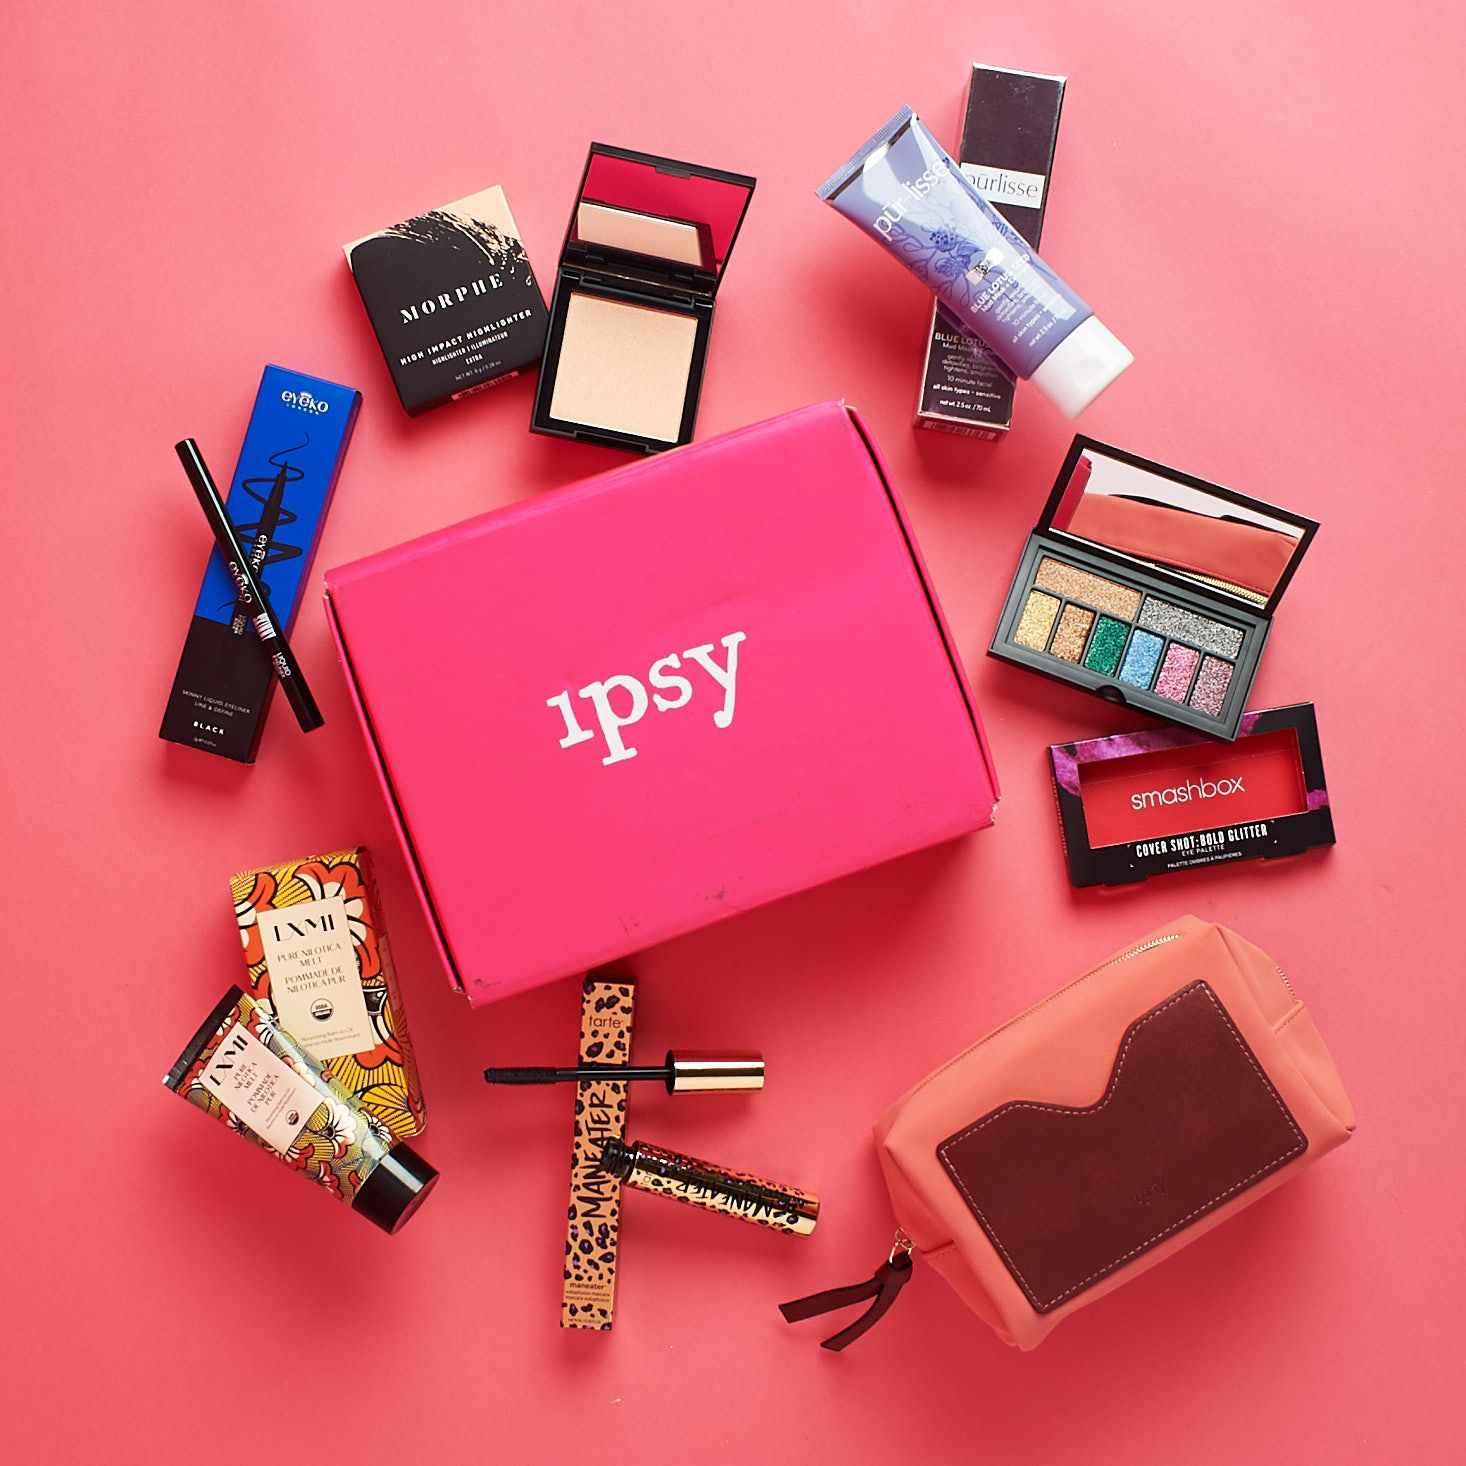 Discover the Makeup Subscription Service Ipsy